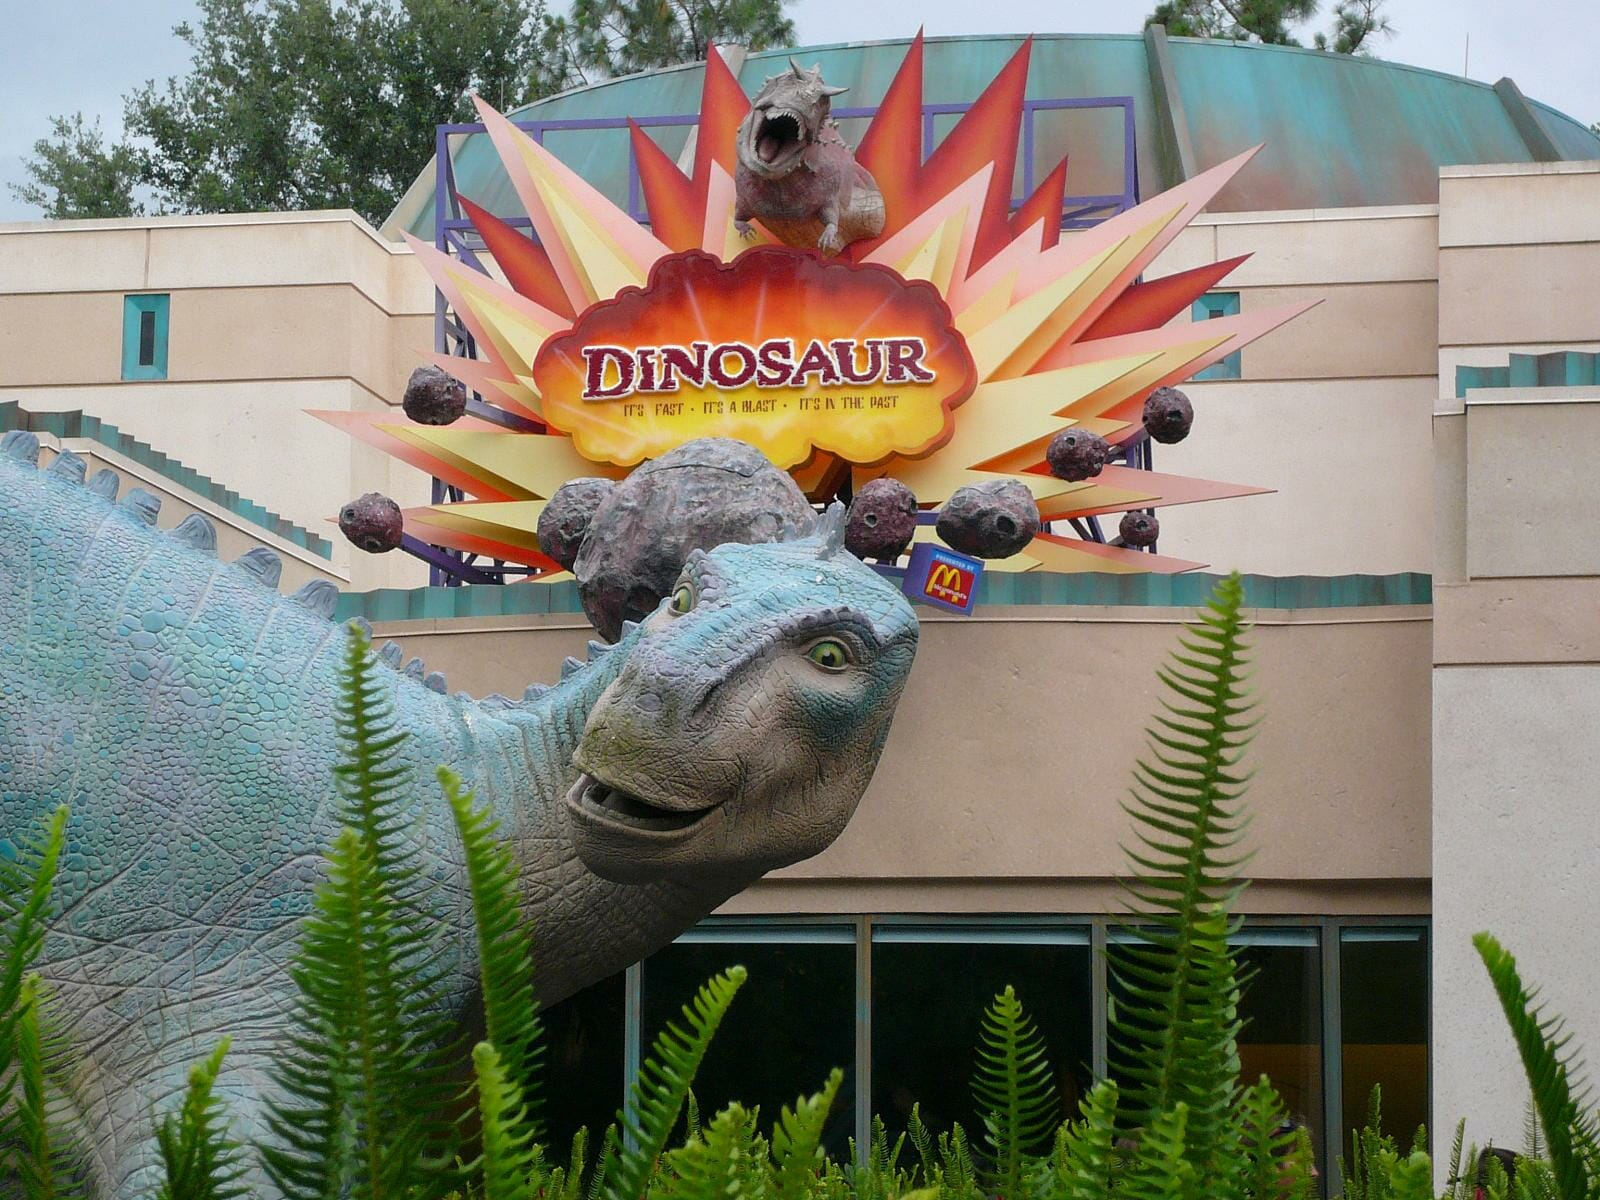 A big blue and green dinosaur outside of the entrance to the Dinosaur ride